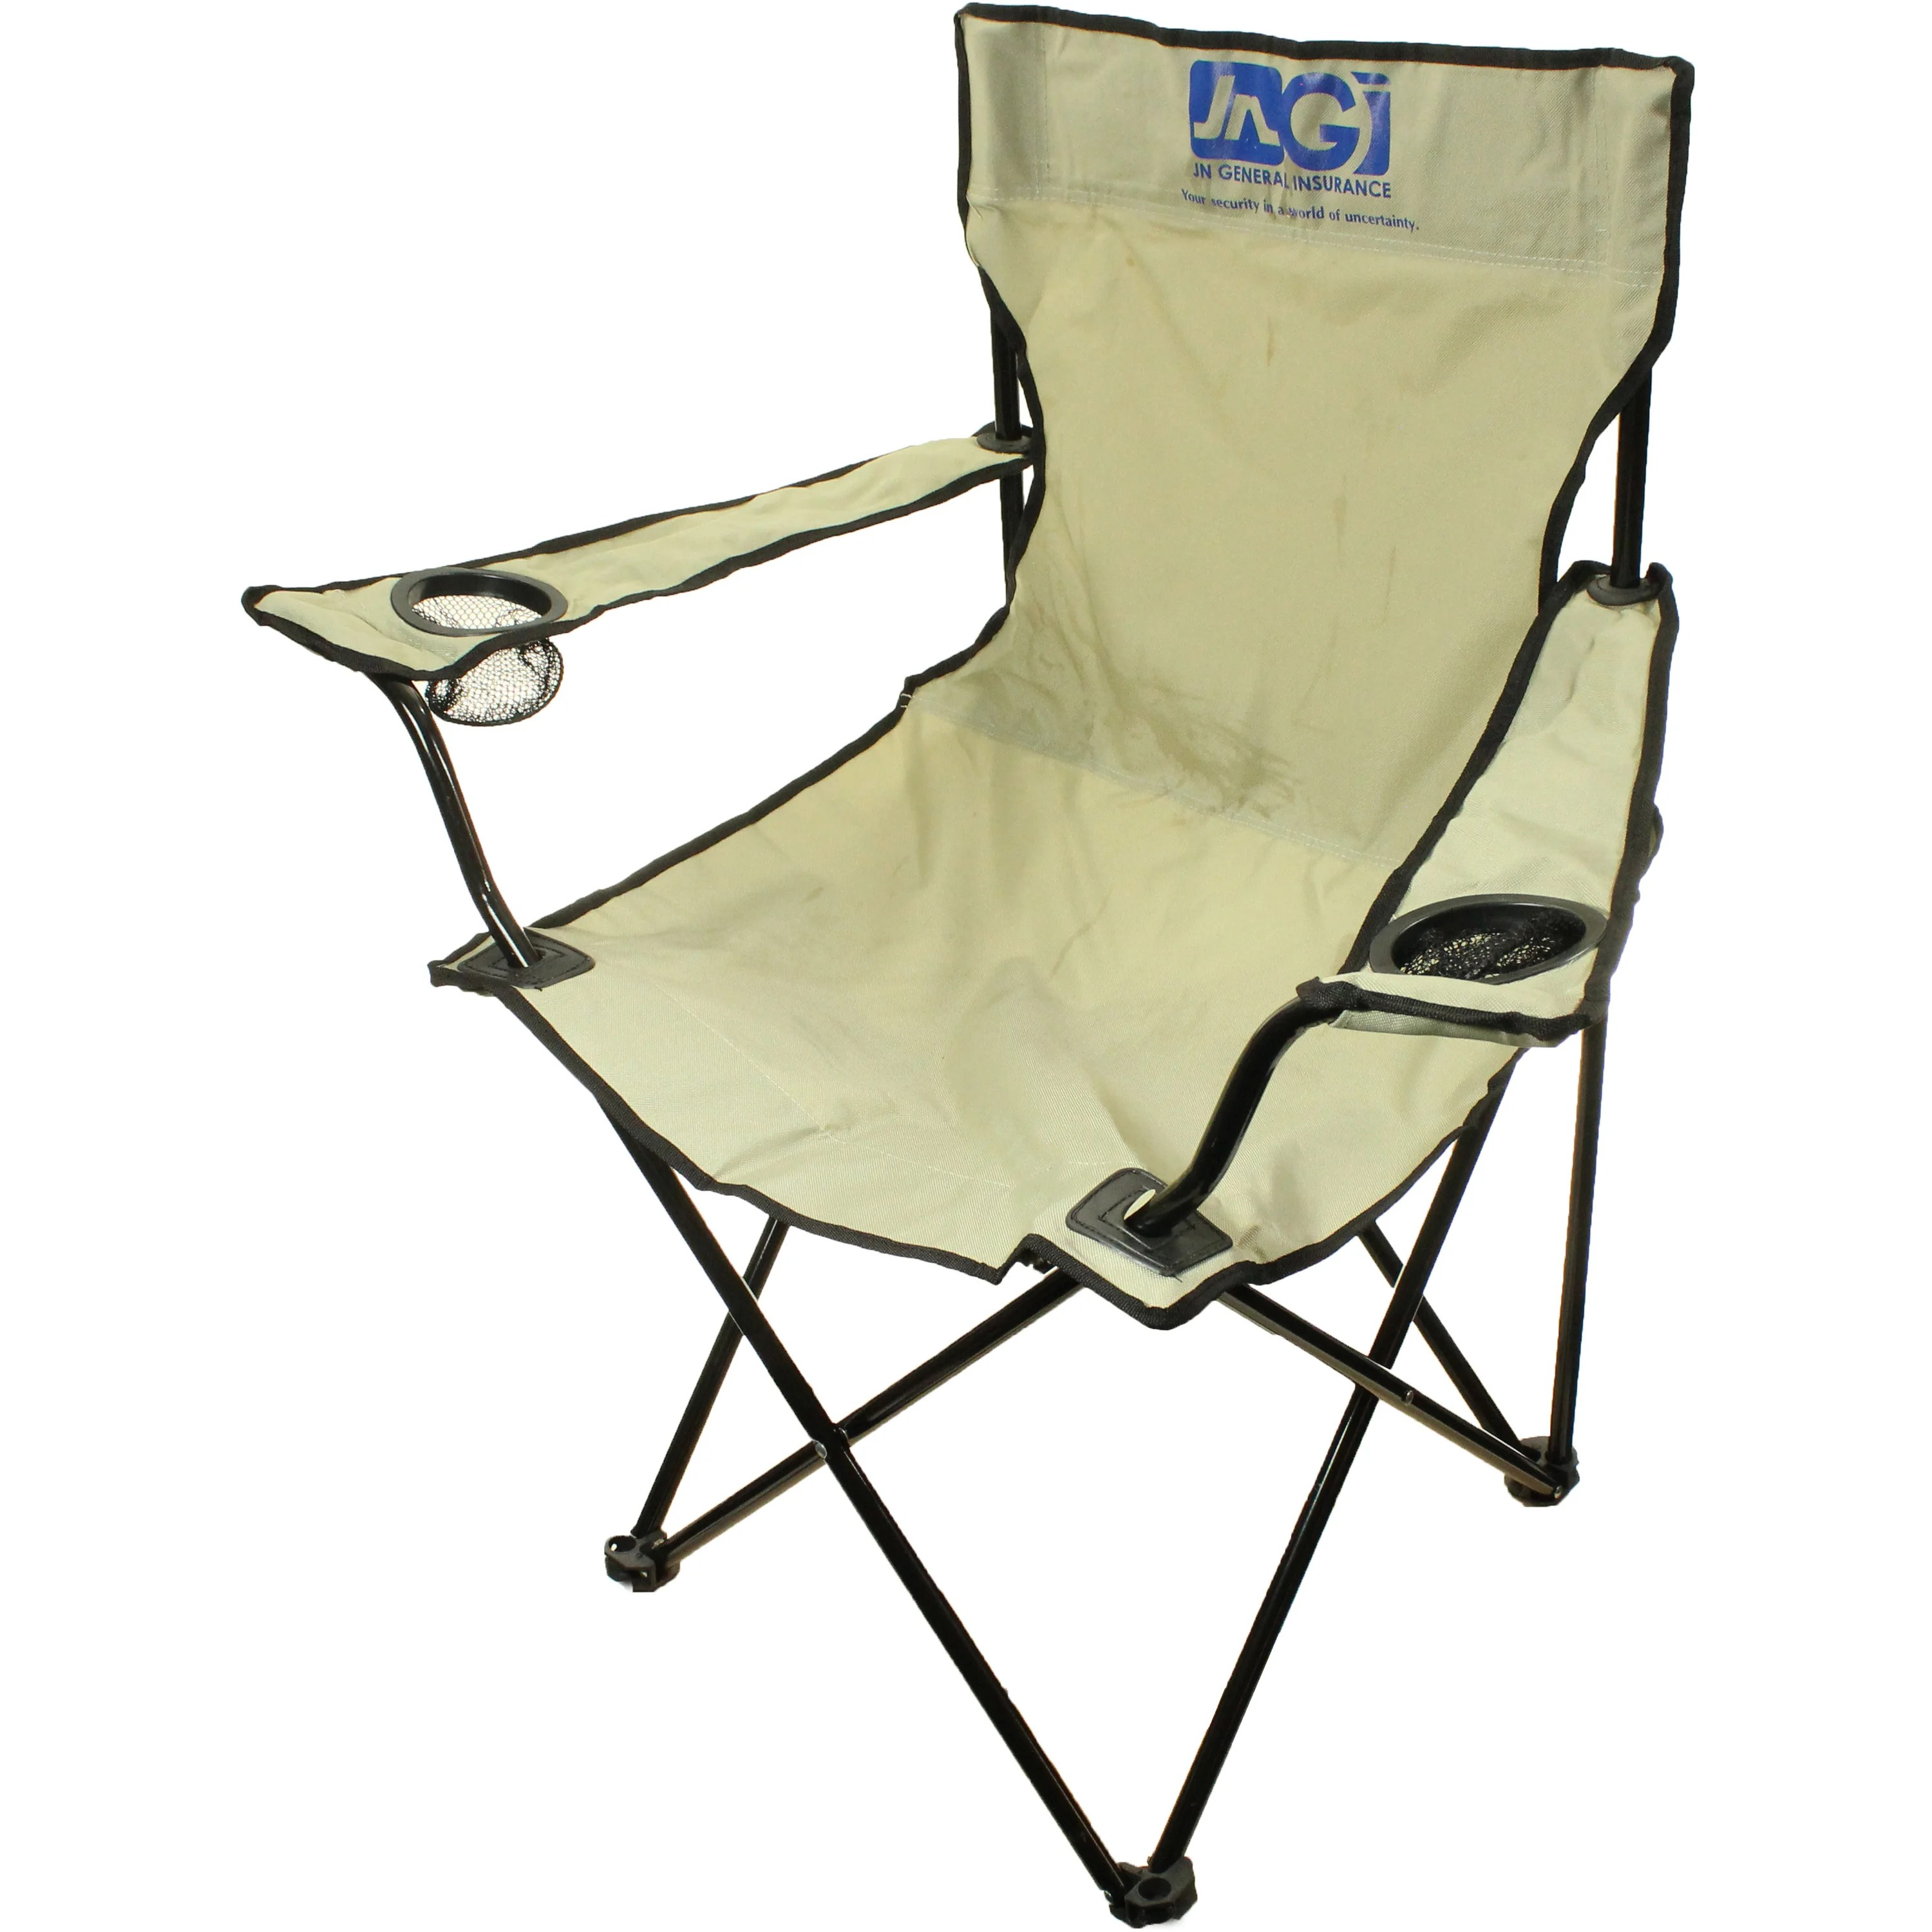 folding chair quality plastic covers in india with carrying bag trade show giveaways